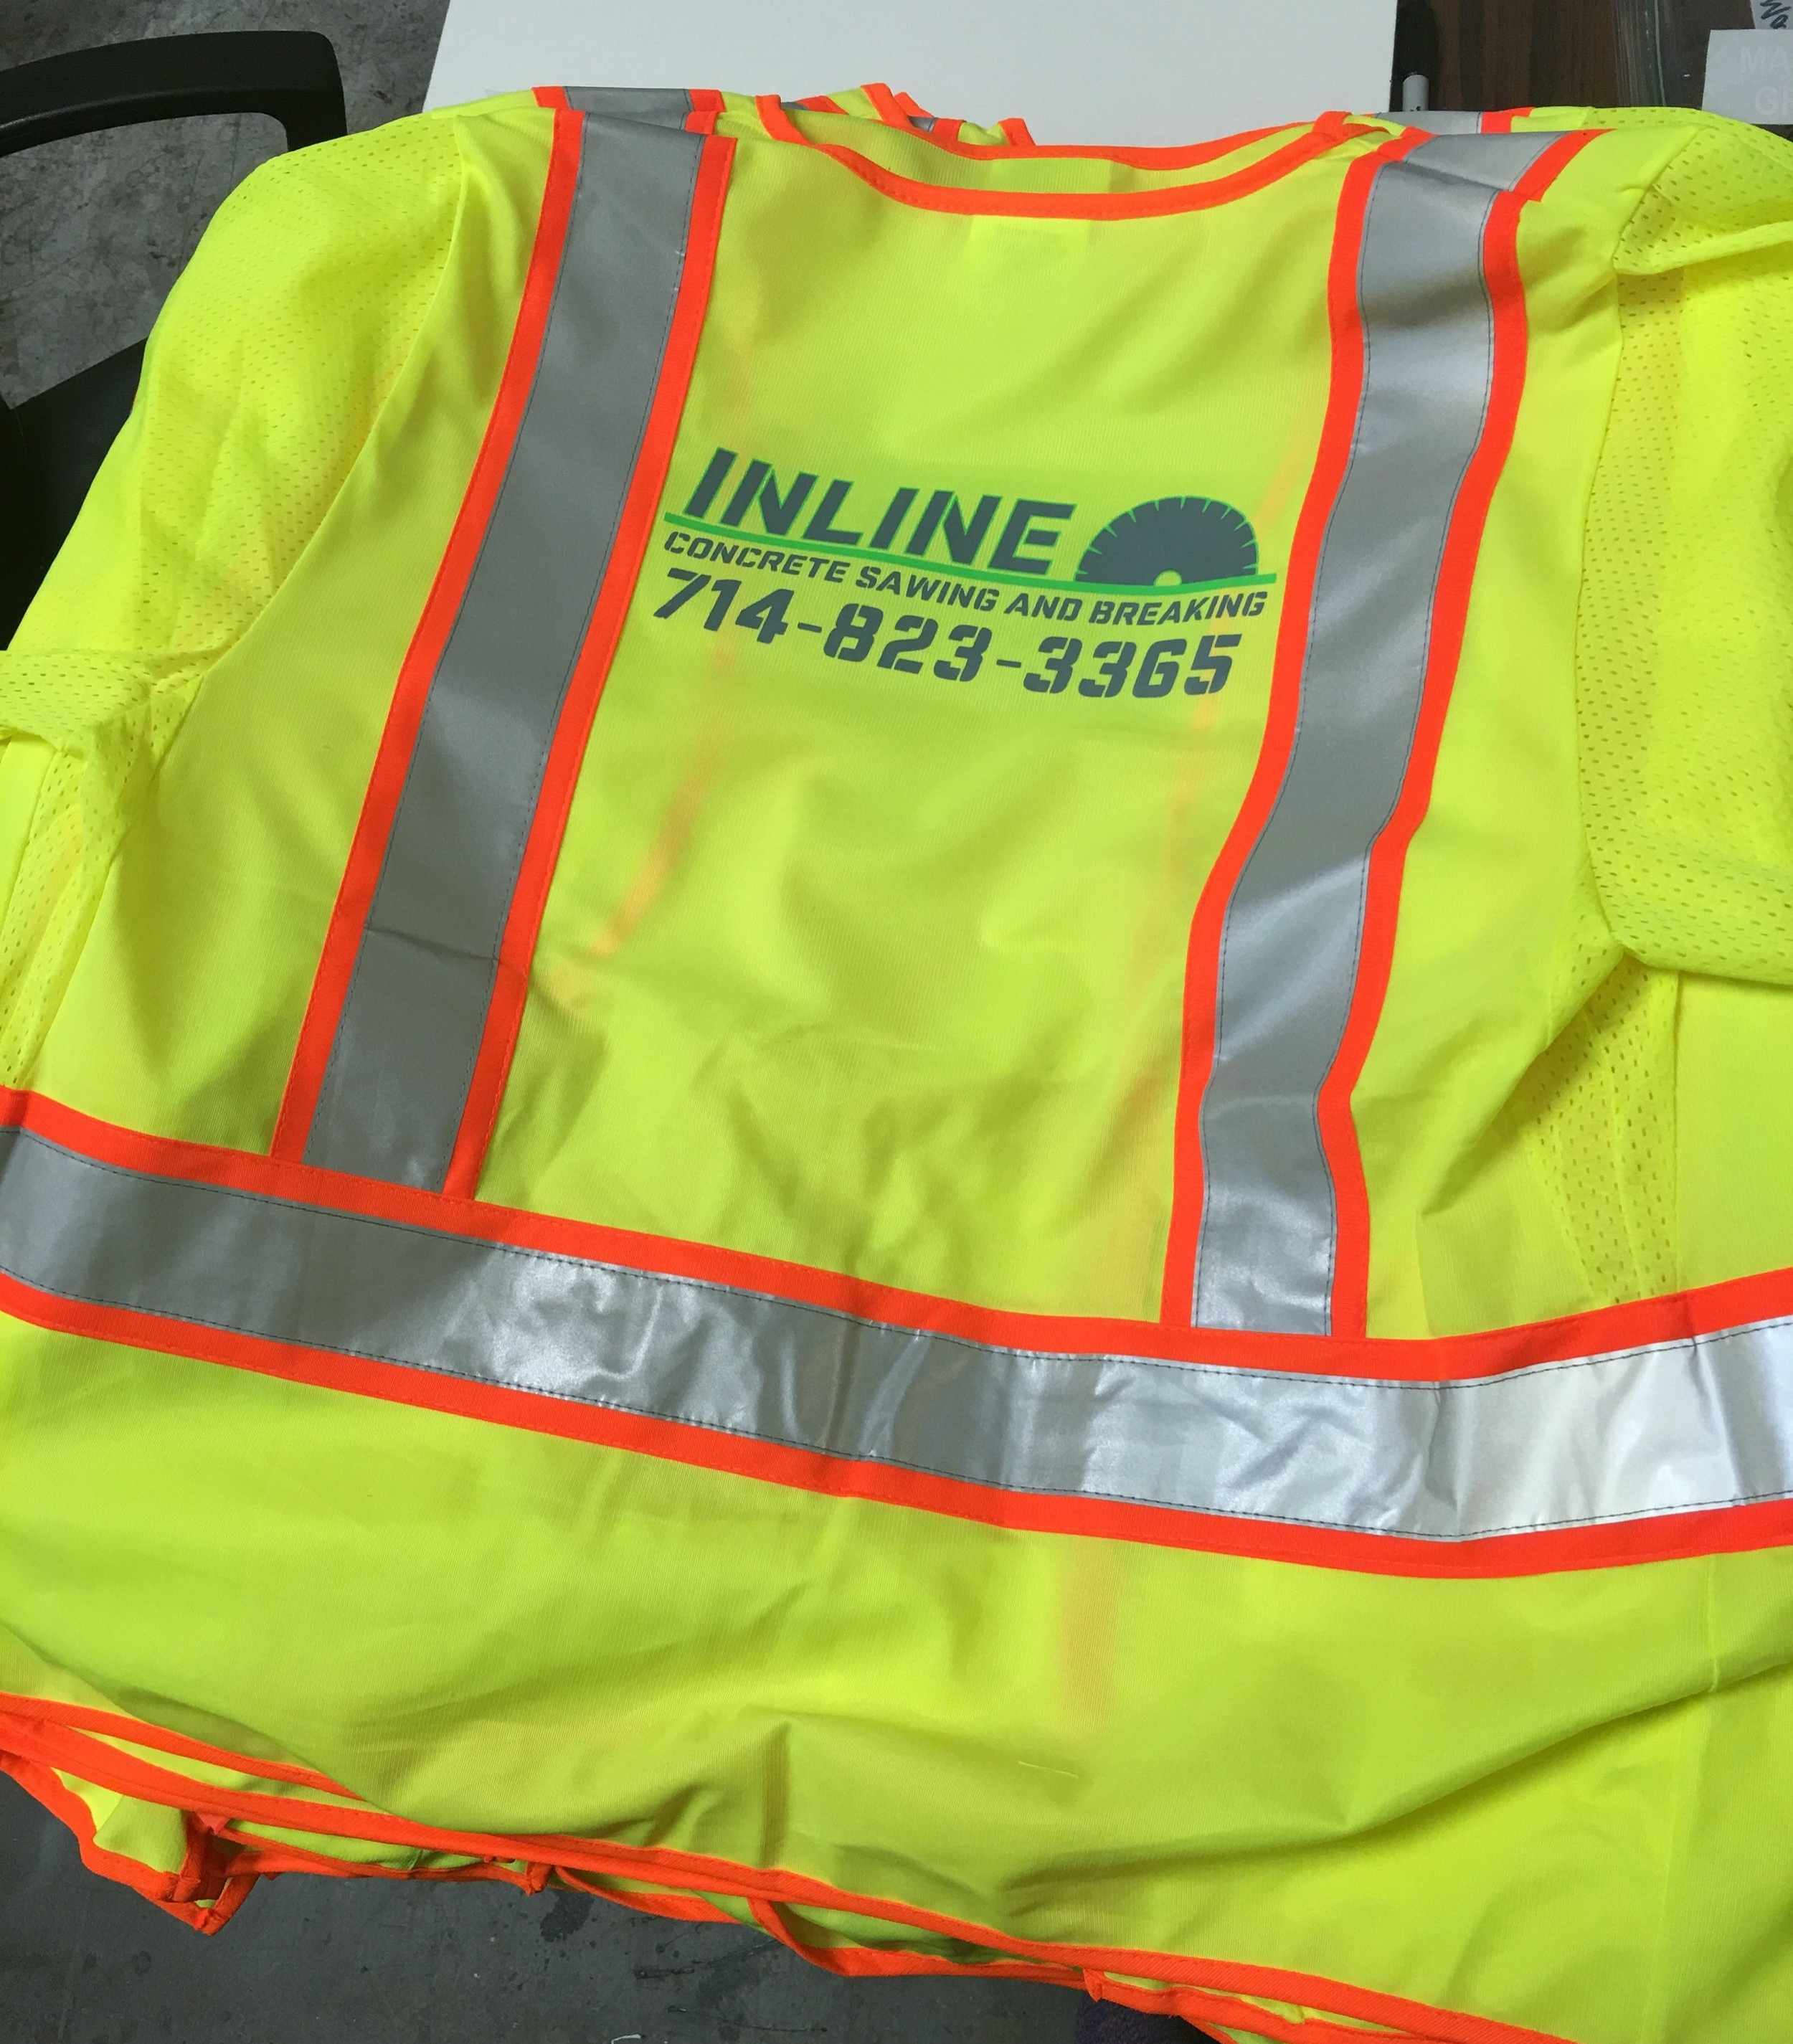 Custom Safety Vests with company logo Inline Concrete